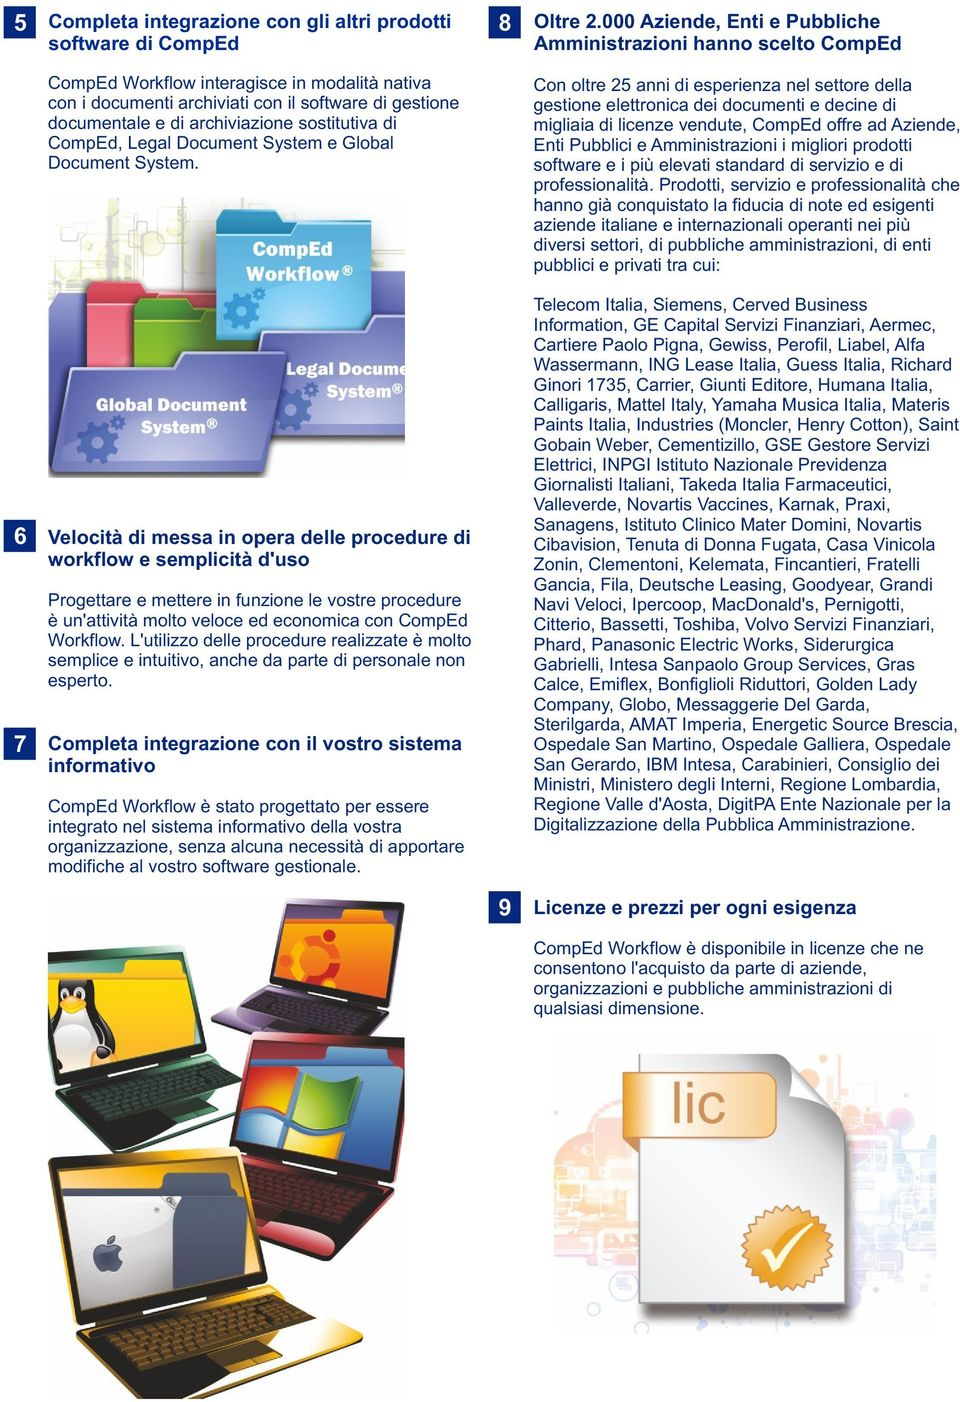 sostitutiva di omped, Legal Document System e Global Document System.